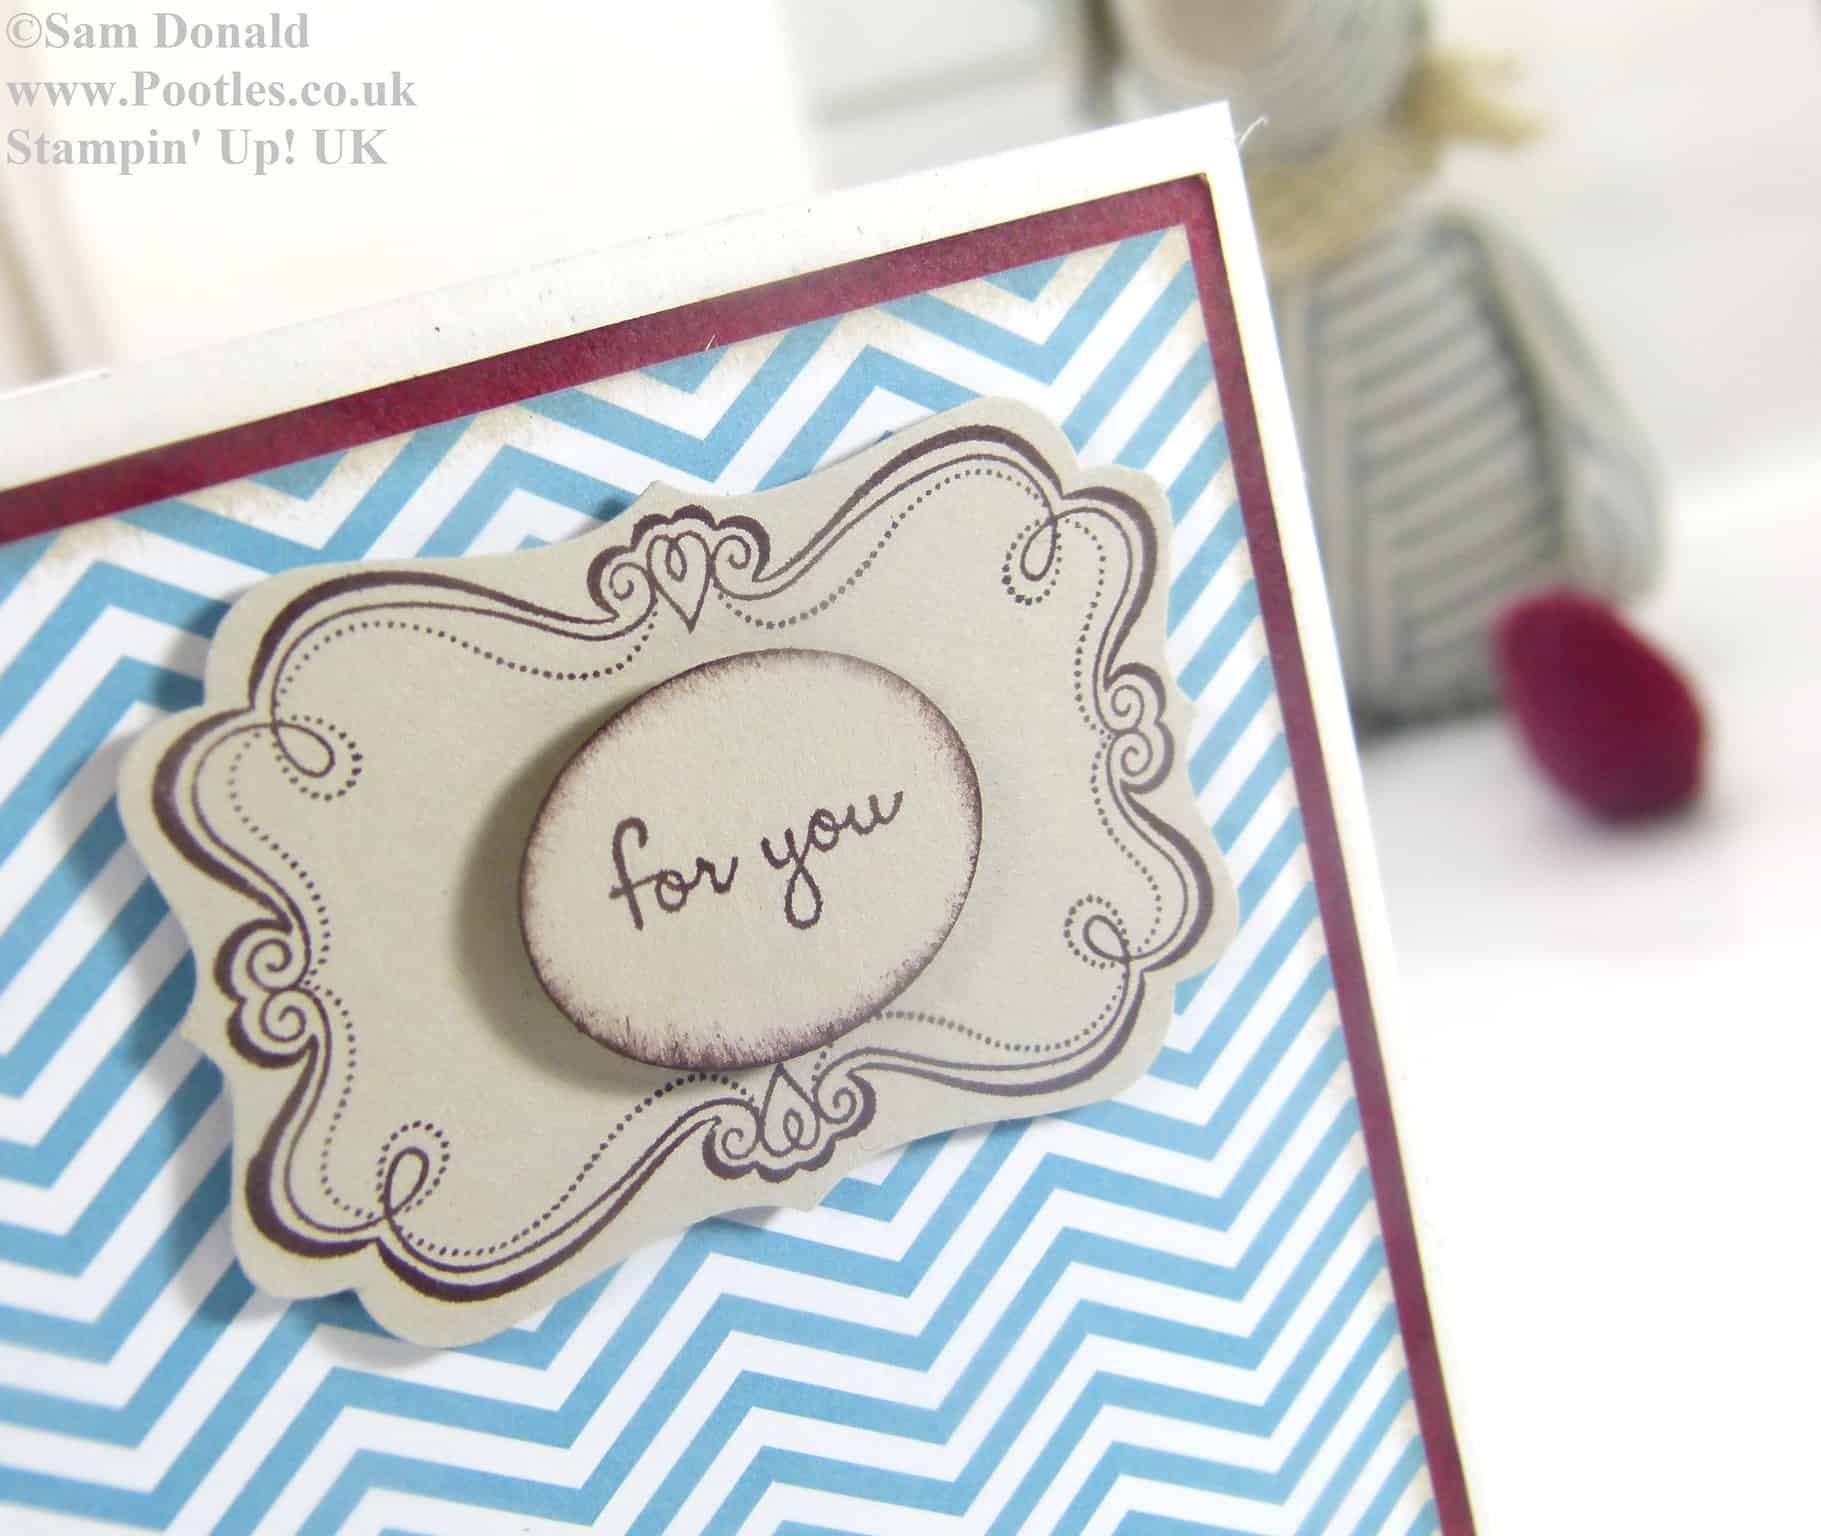 POOTLES Stampin Up UK A Mouse Inspired For You 2 (1)